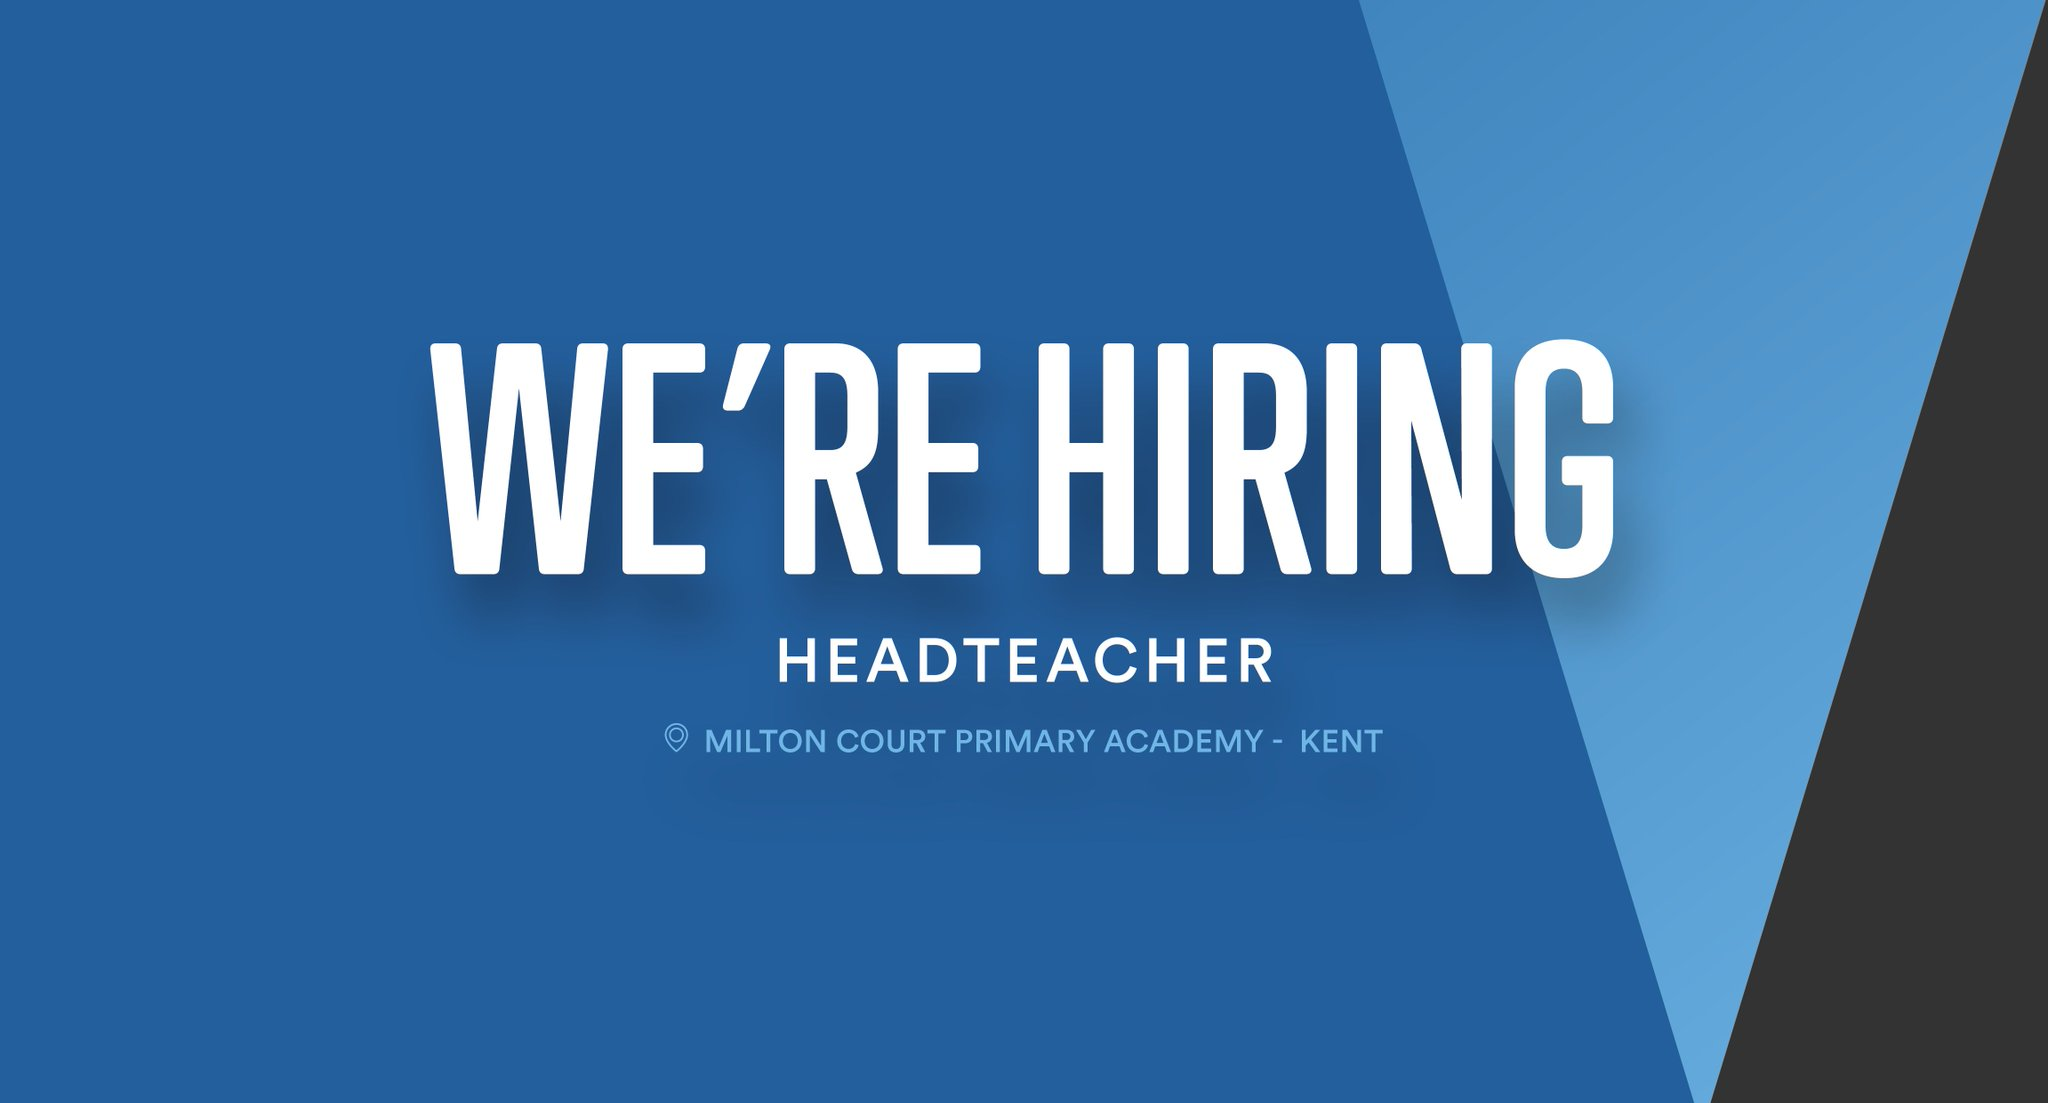 Reach2 Academy Trust >> Reach2 Academy Trust On Twitter We Are Looking For A